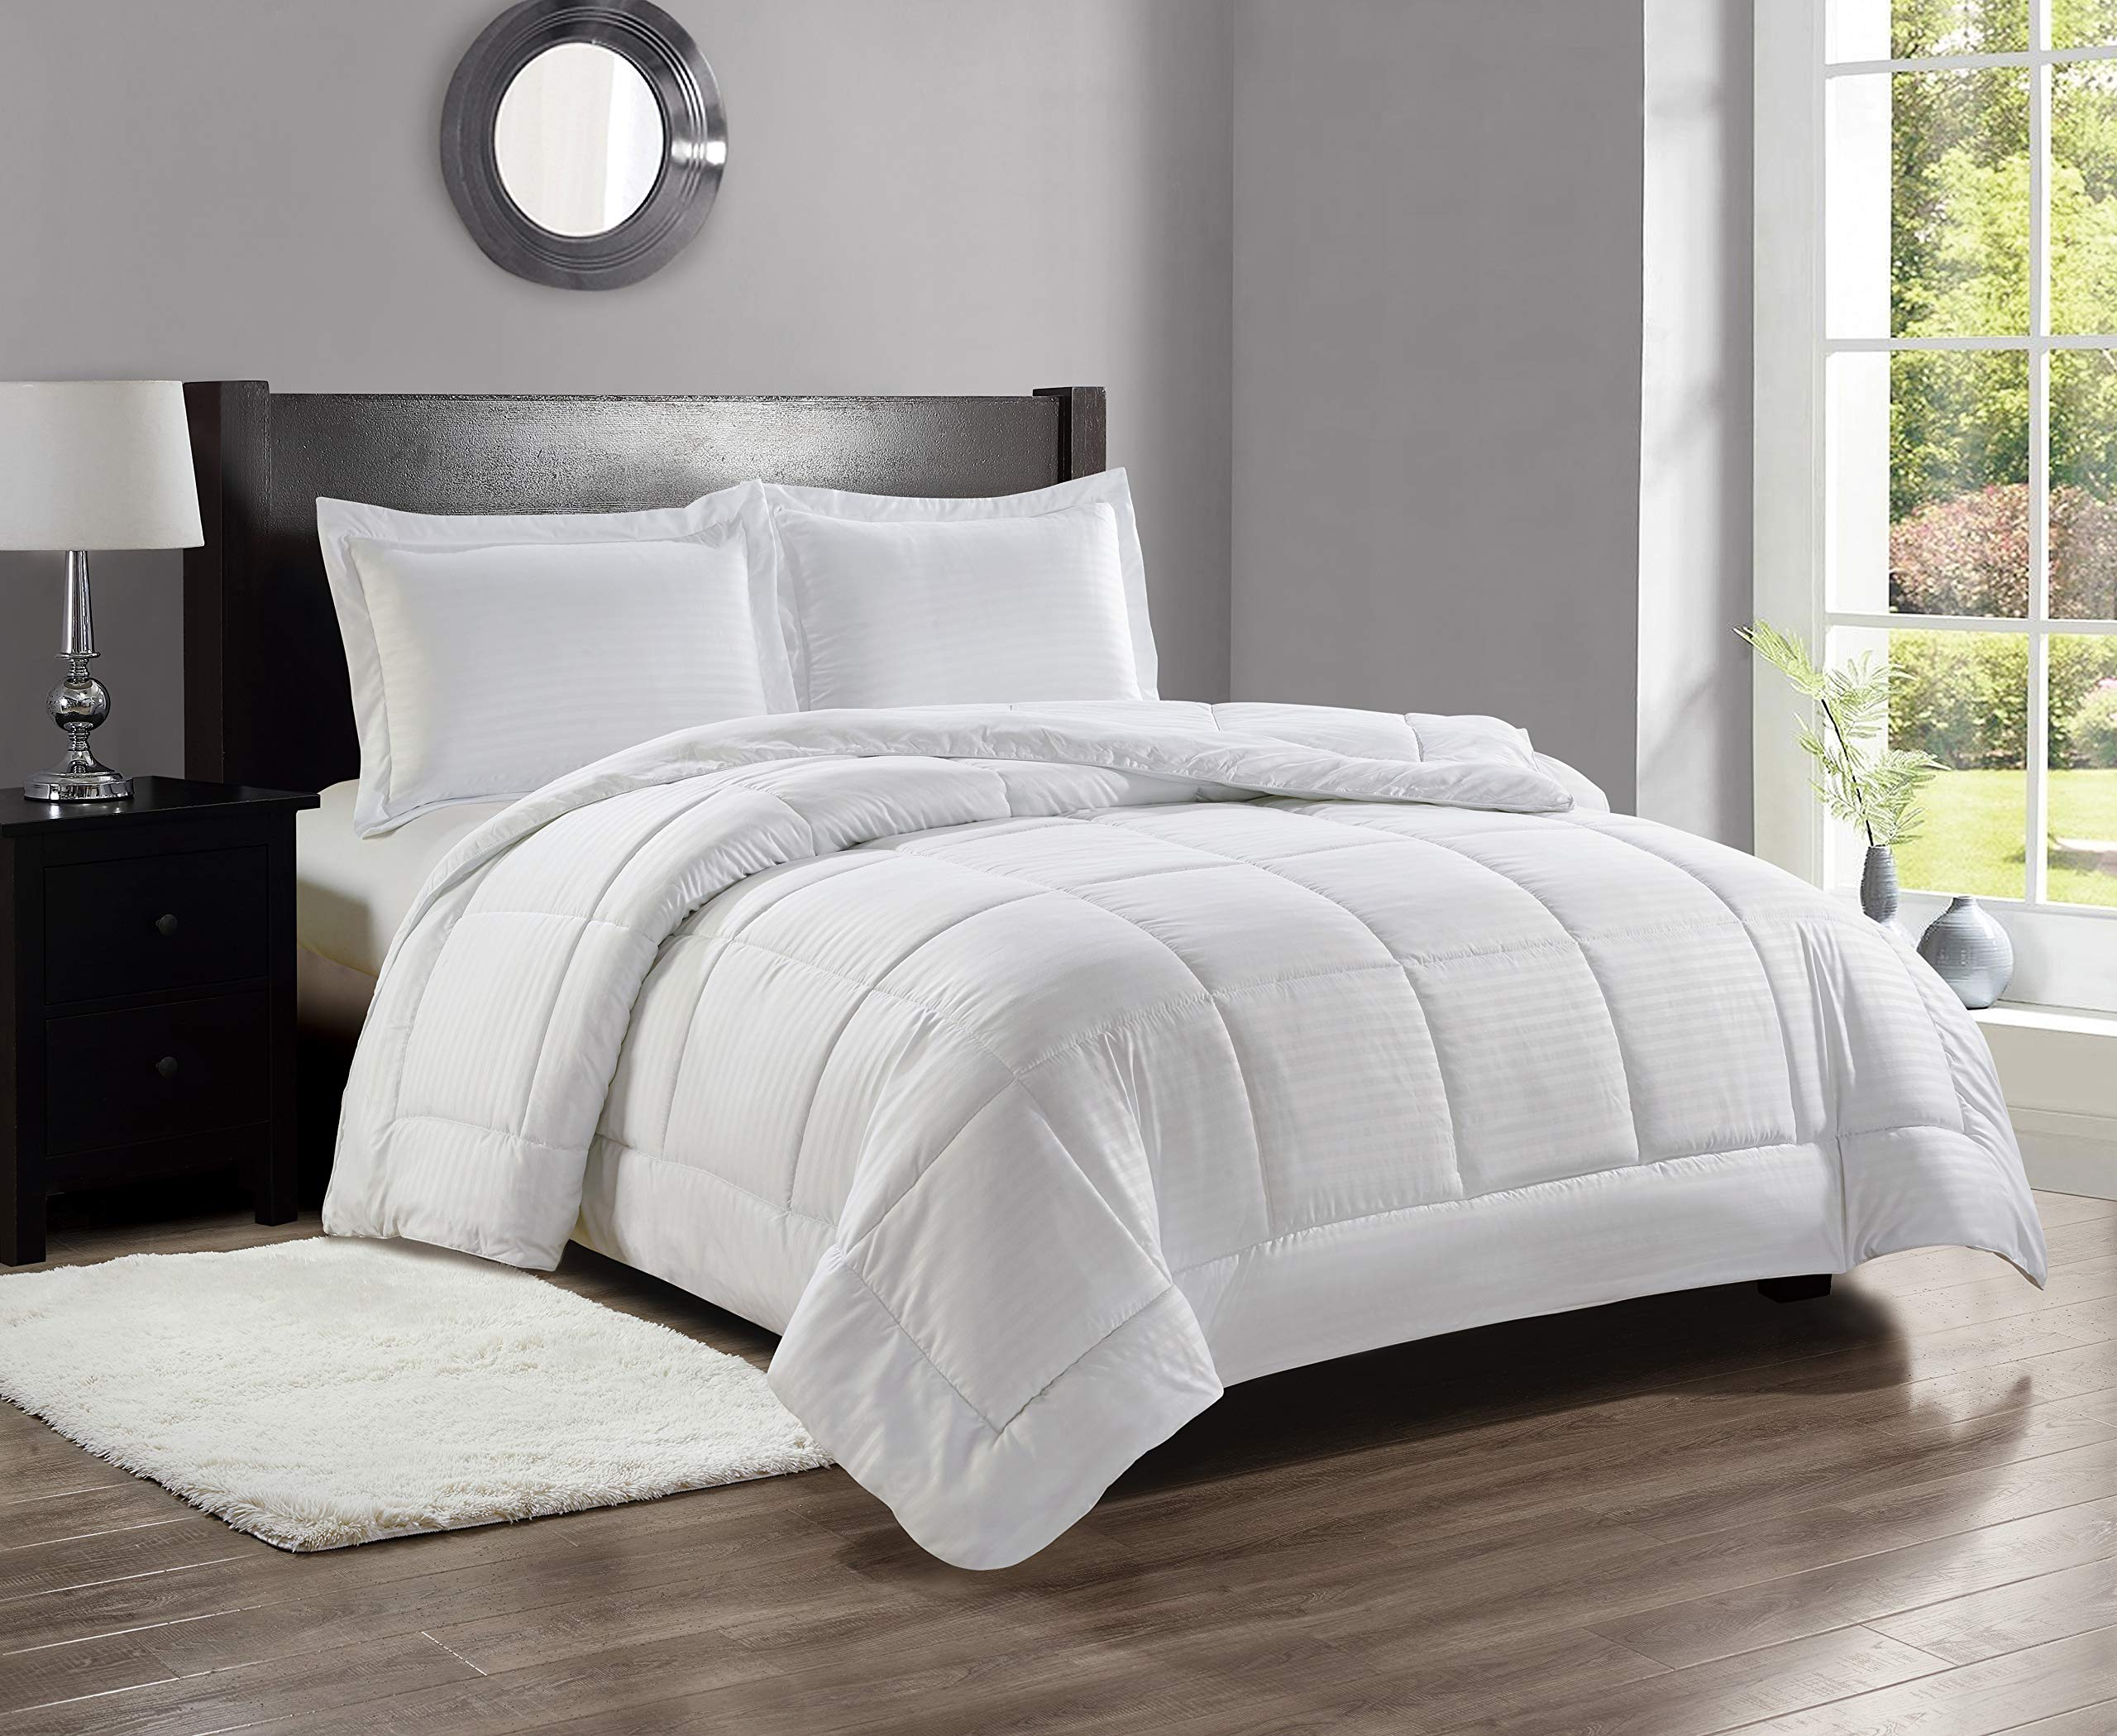 Decor&More Home Essentials Full/Queen Size Reversible Down Alternative Embossed Stripe Comforter (86'' x 86'') - White